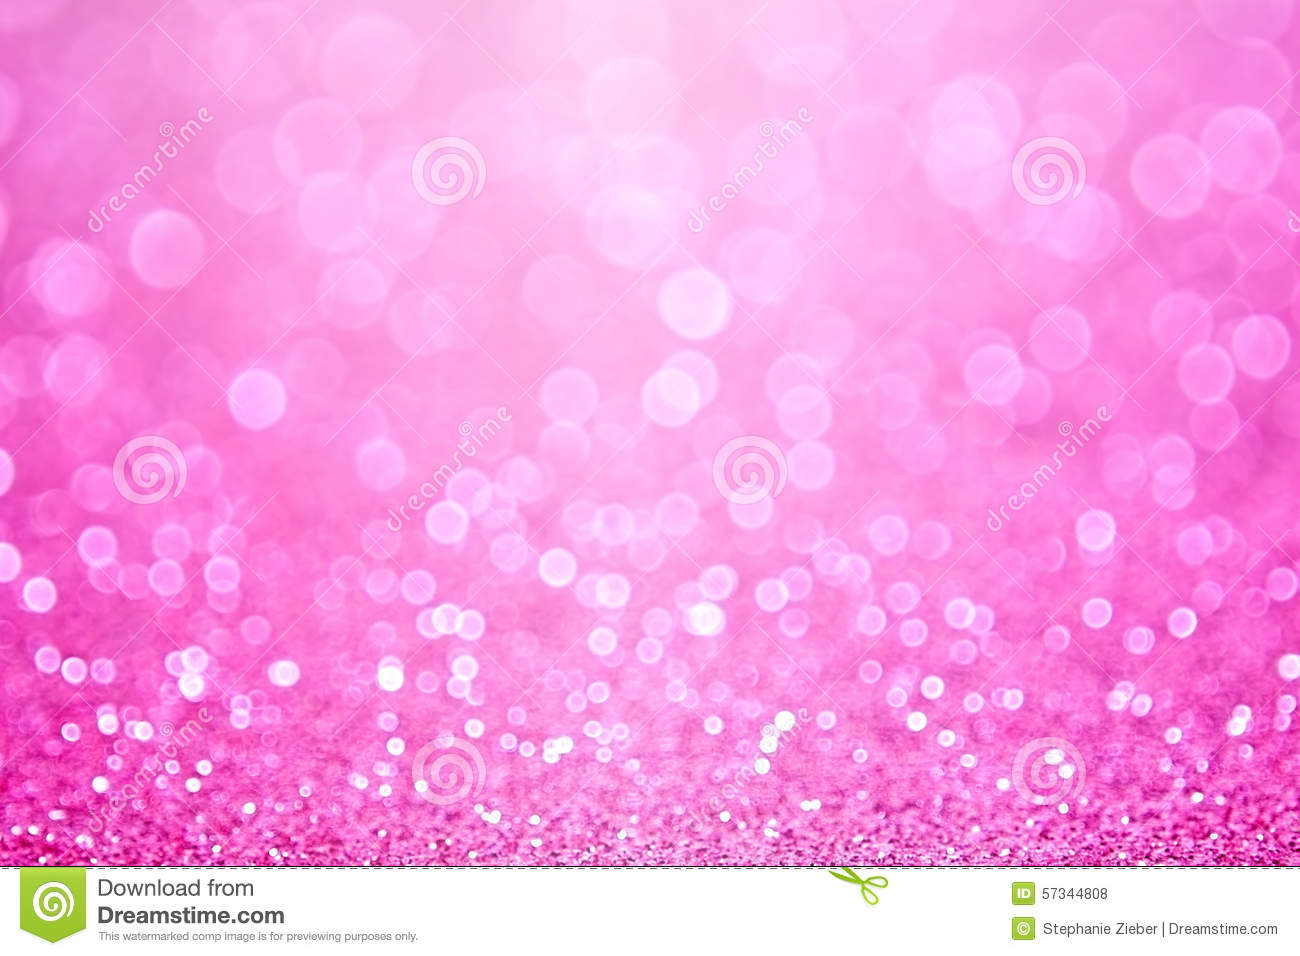 Bday background images - Pink Princess Baby Girl Birthday Background Stock Photo